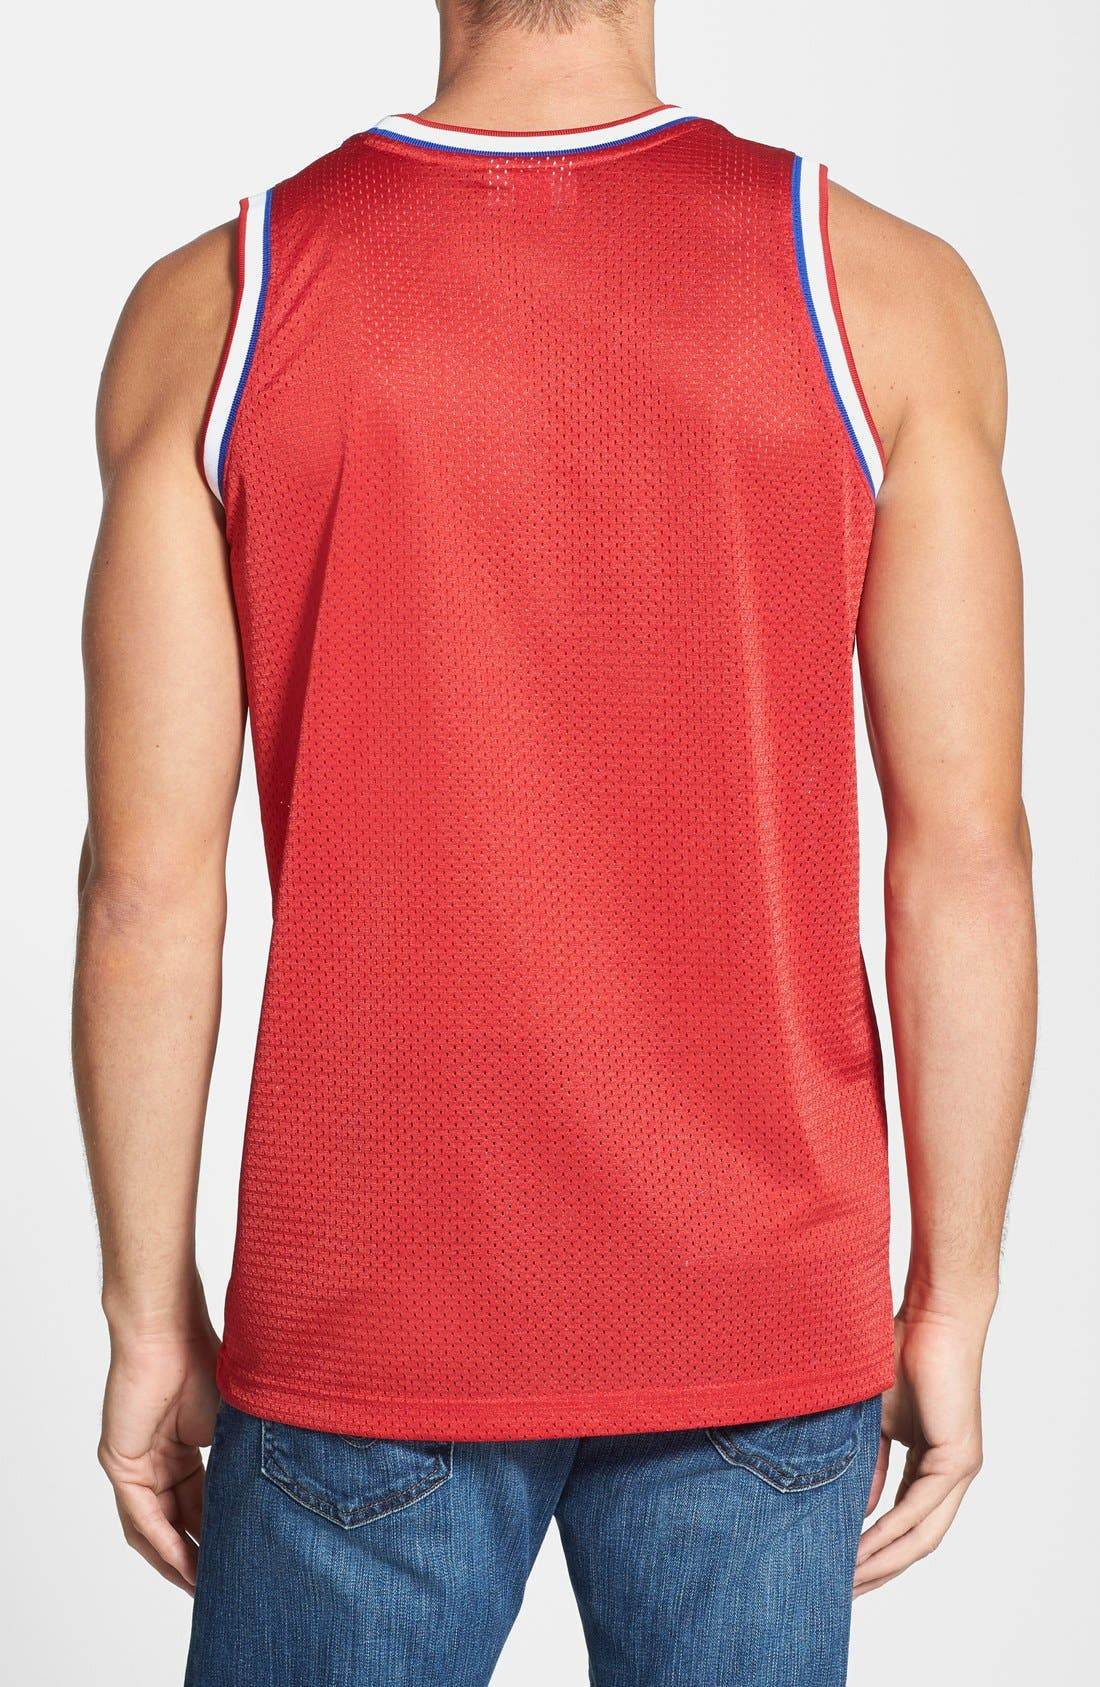 Alternate Image 2  - Mitchell & Ness 'Los Angeles Clippers' Mesh Tank Top Jersey